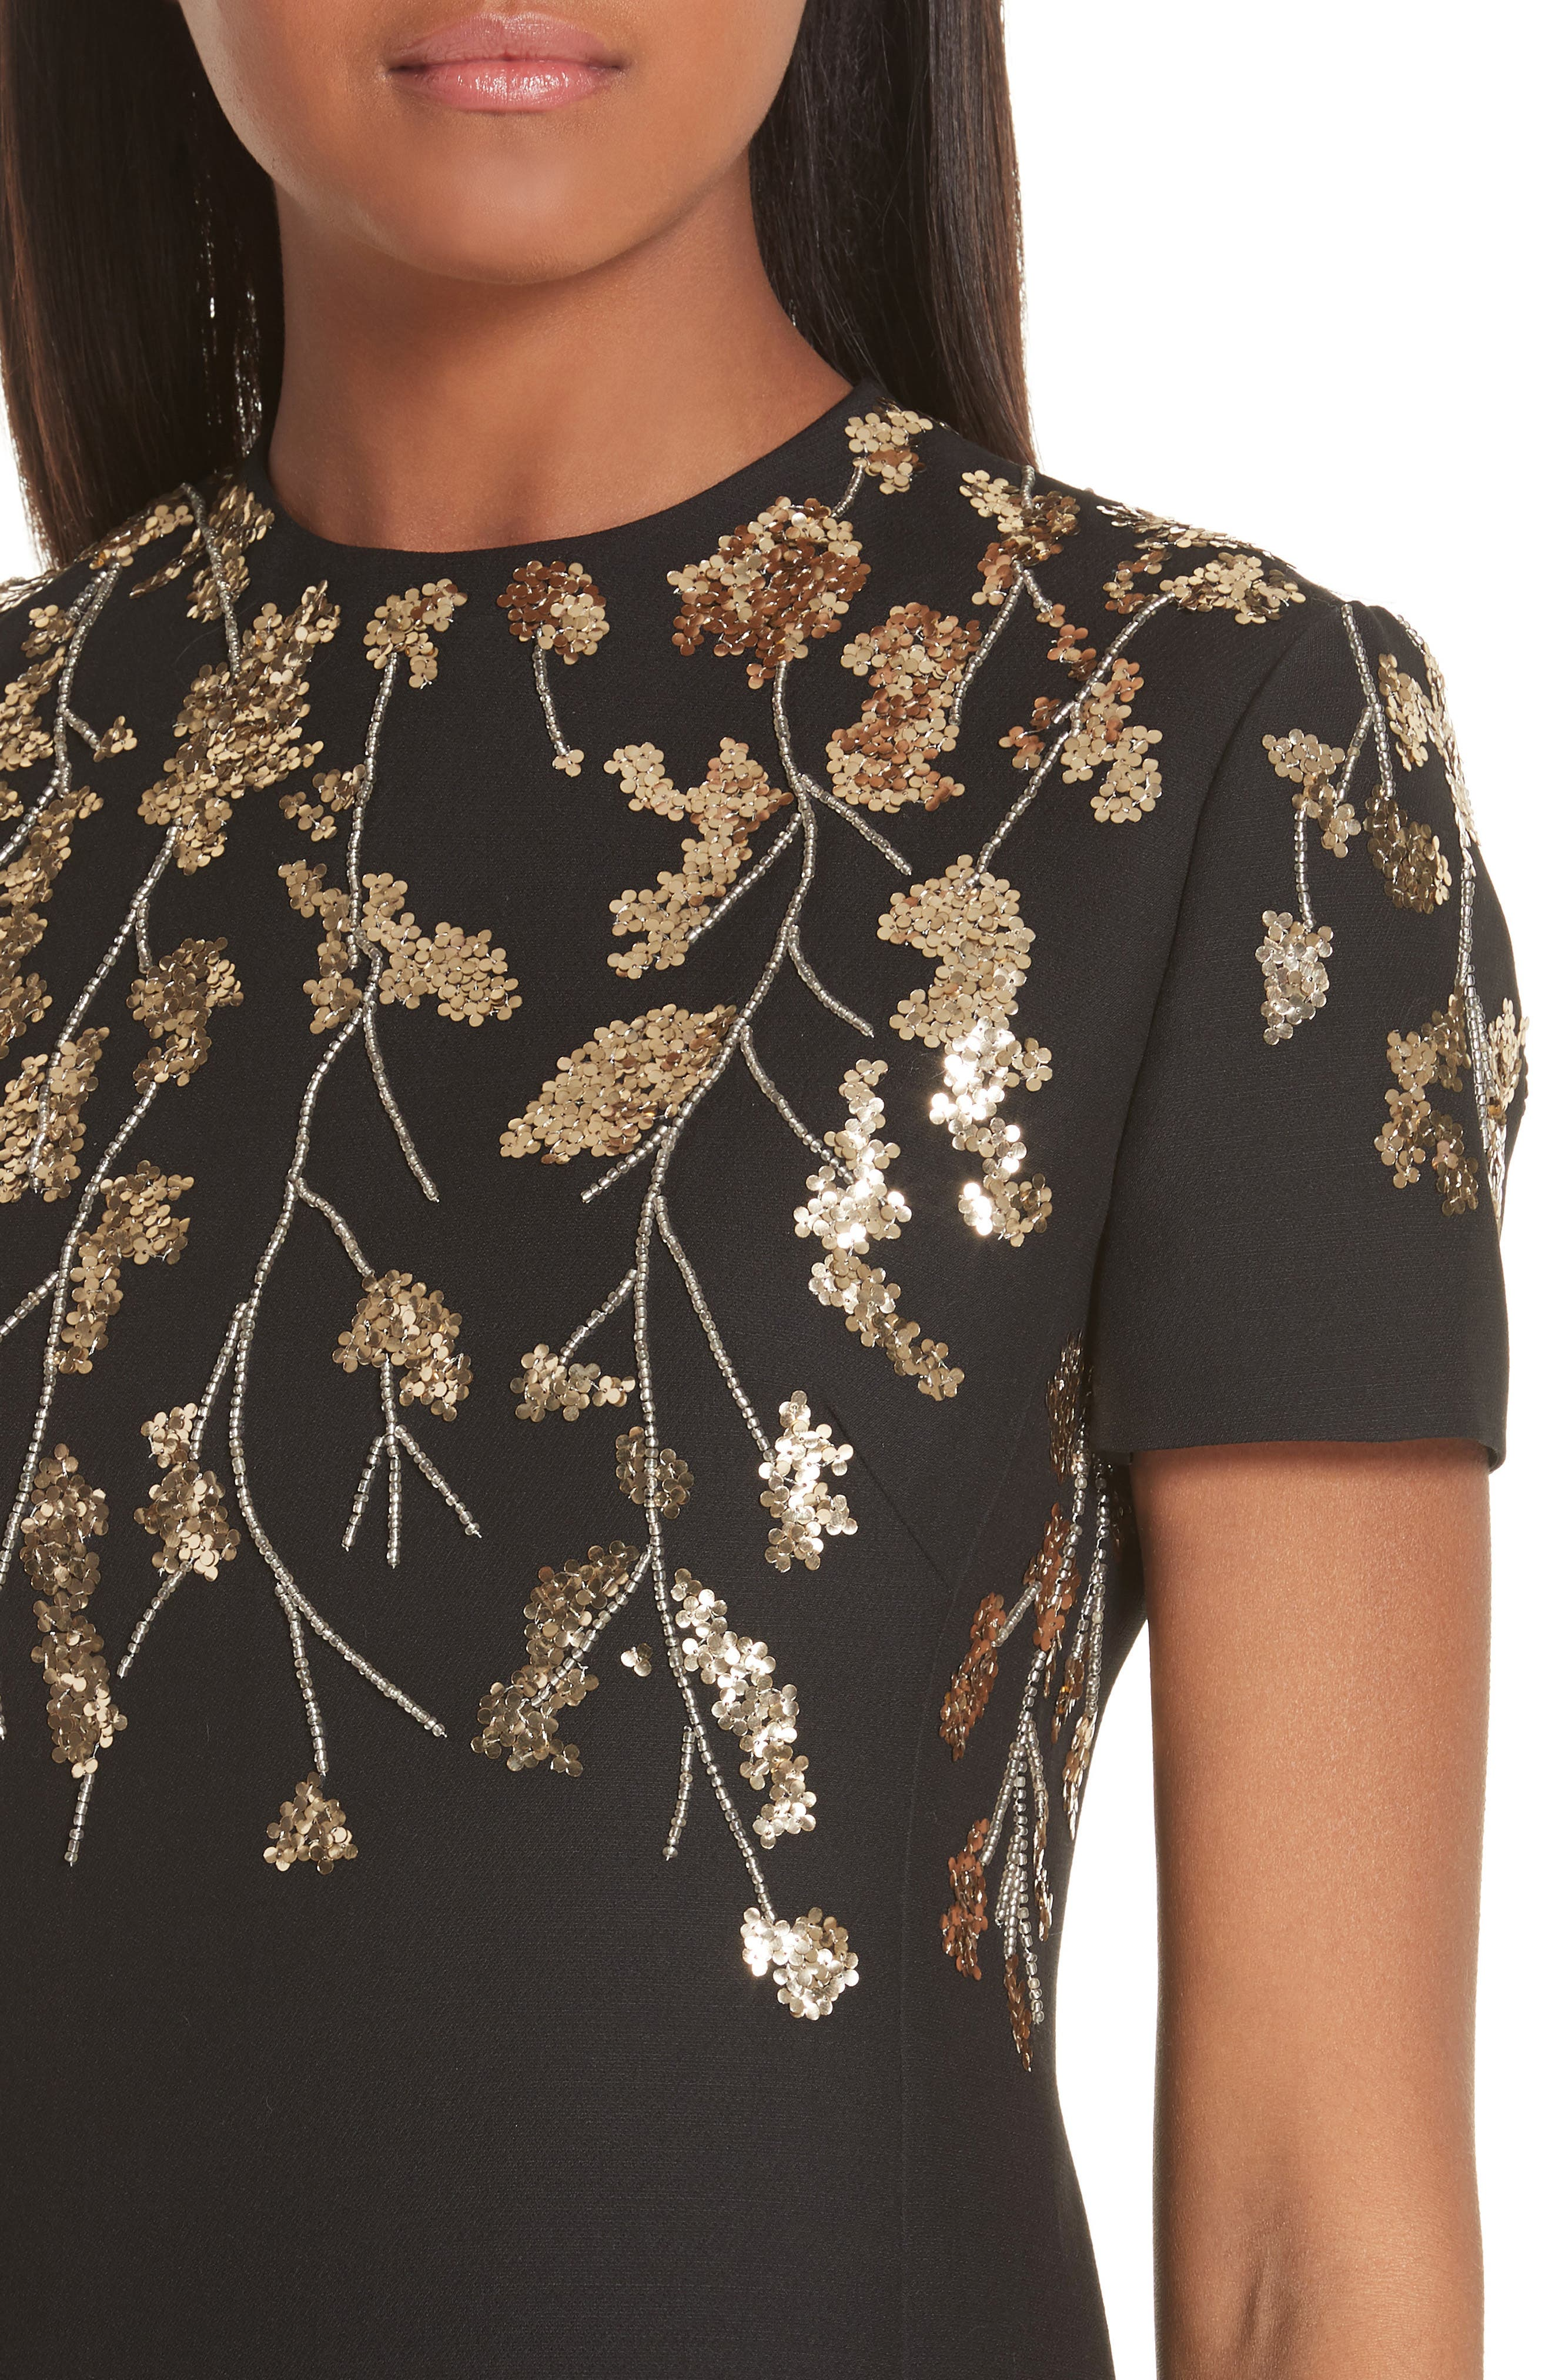 VALENTINO, Floral Embroidered Crepe Couture Dress, Alternate thumbnail 5, color, BLACK GOLD